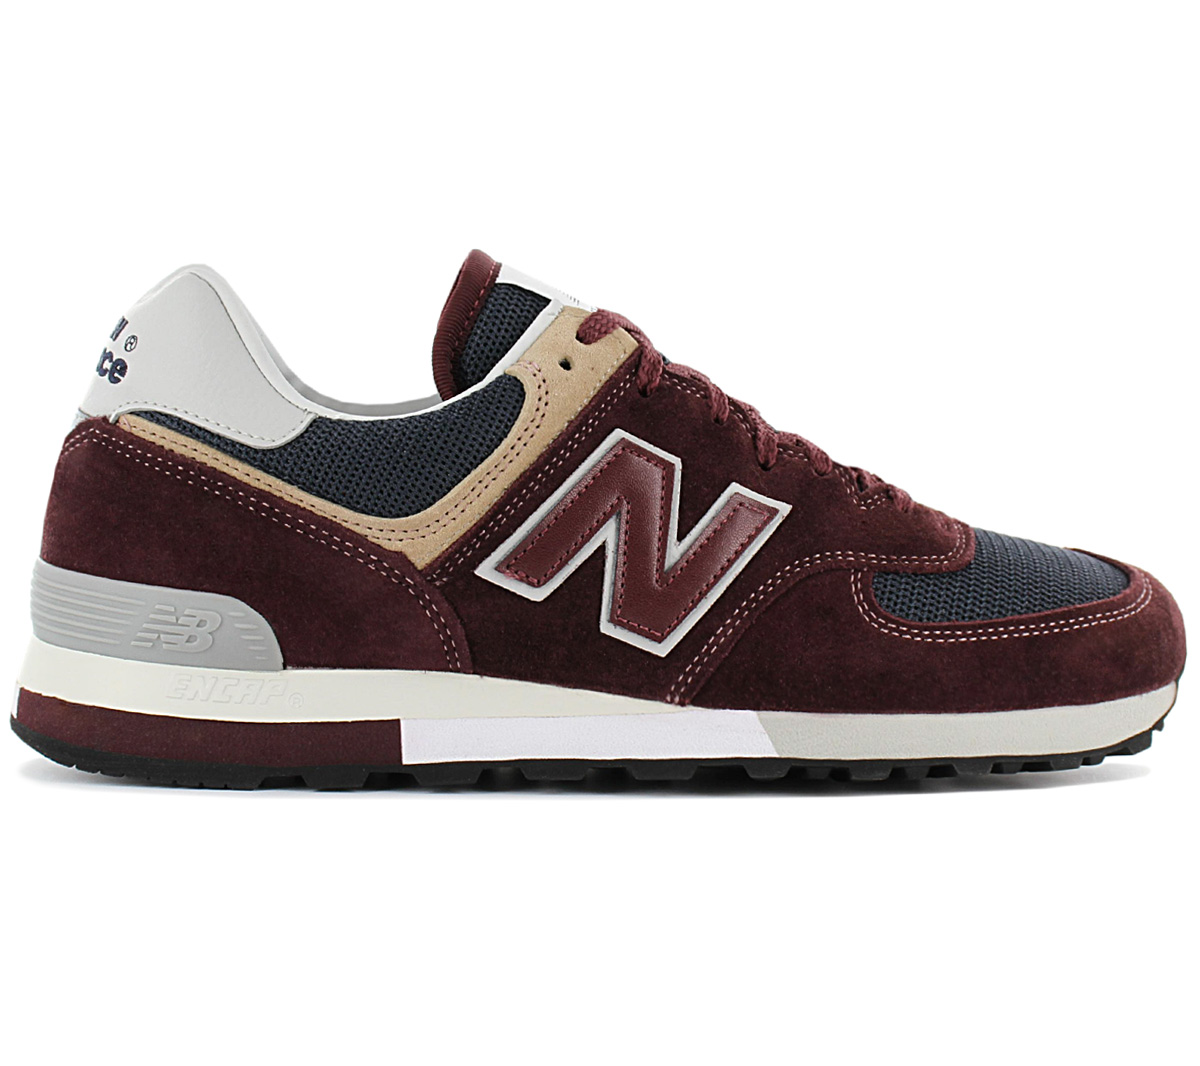 Details about NEW Balance 576-Made in England-OM576OBN Mens Sneaker Shoes  Trainers New- show original title